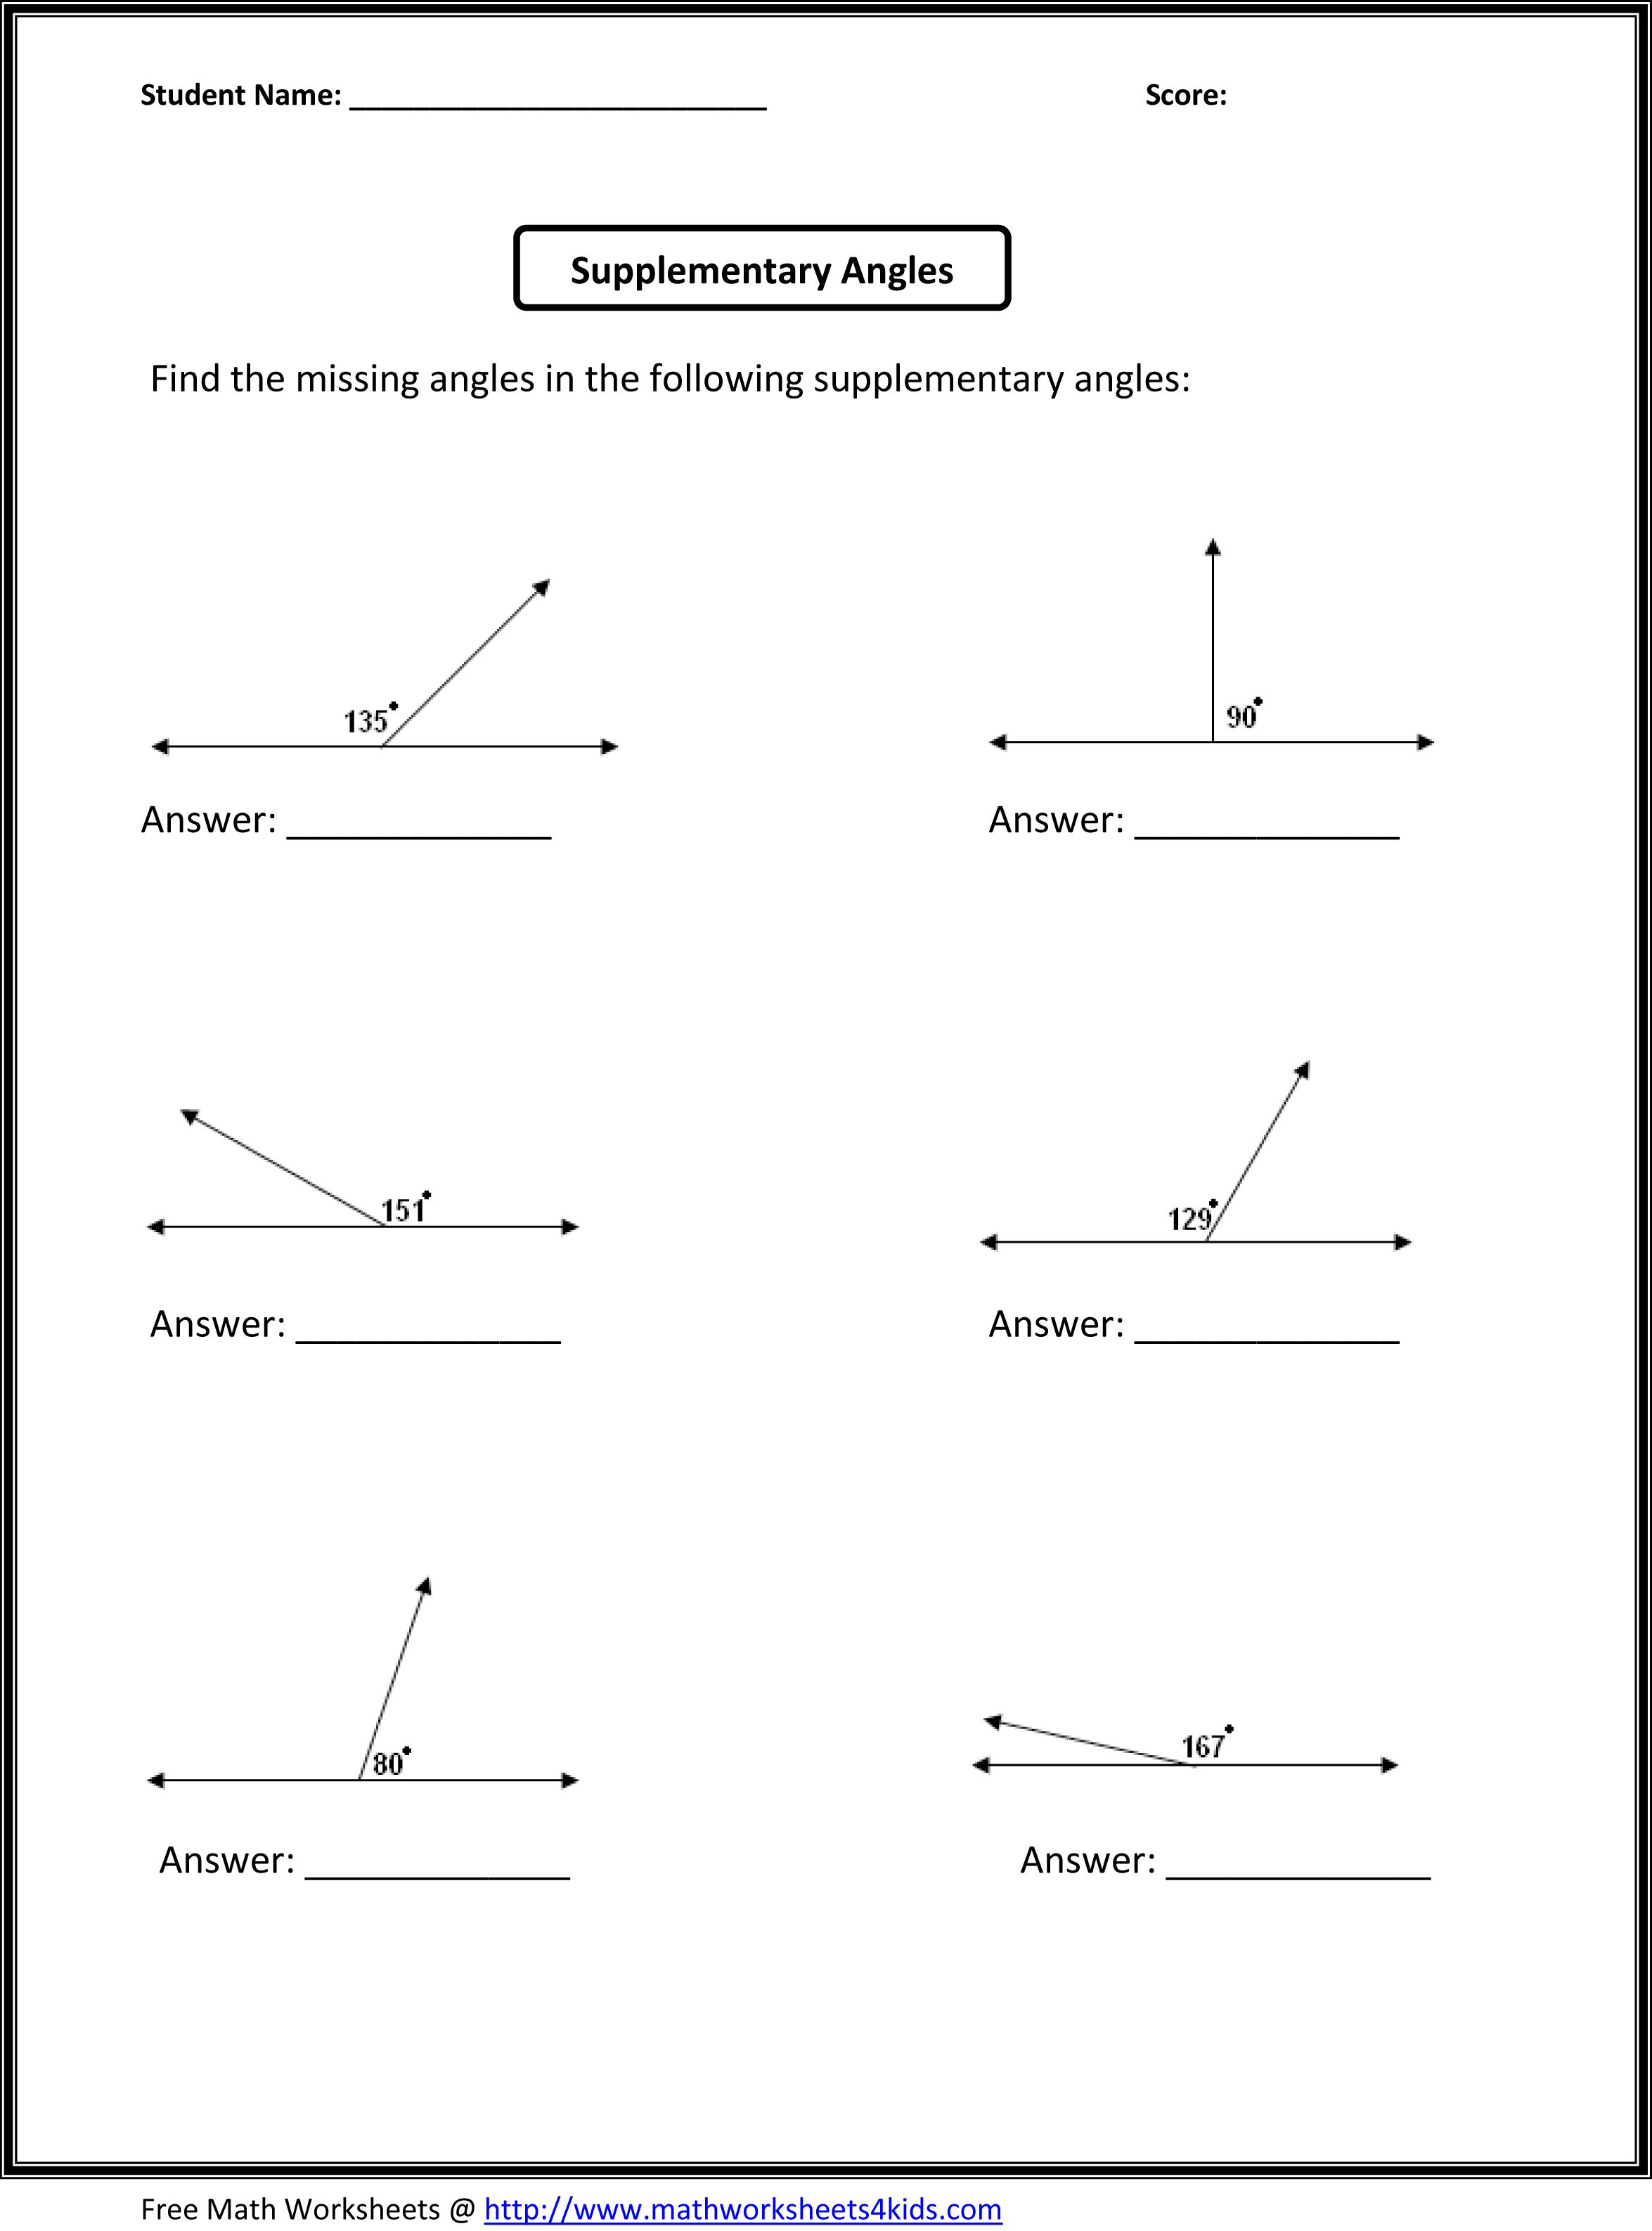 Printables Complementary Supplementary Angles Worksheet supplementary angles worksheet precommunity printables worksheets stem sheets example